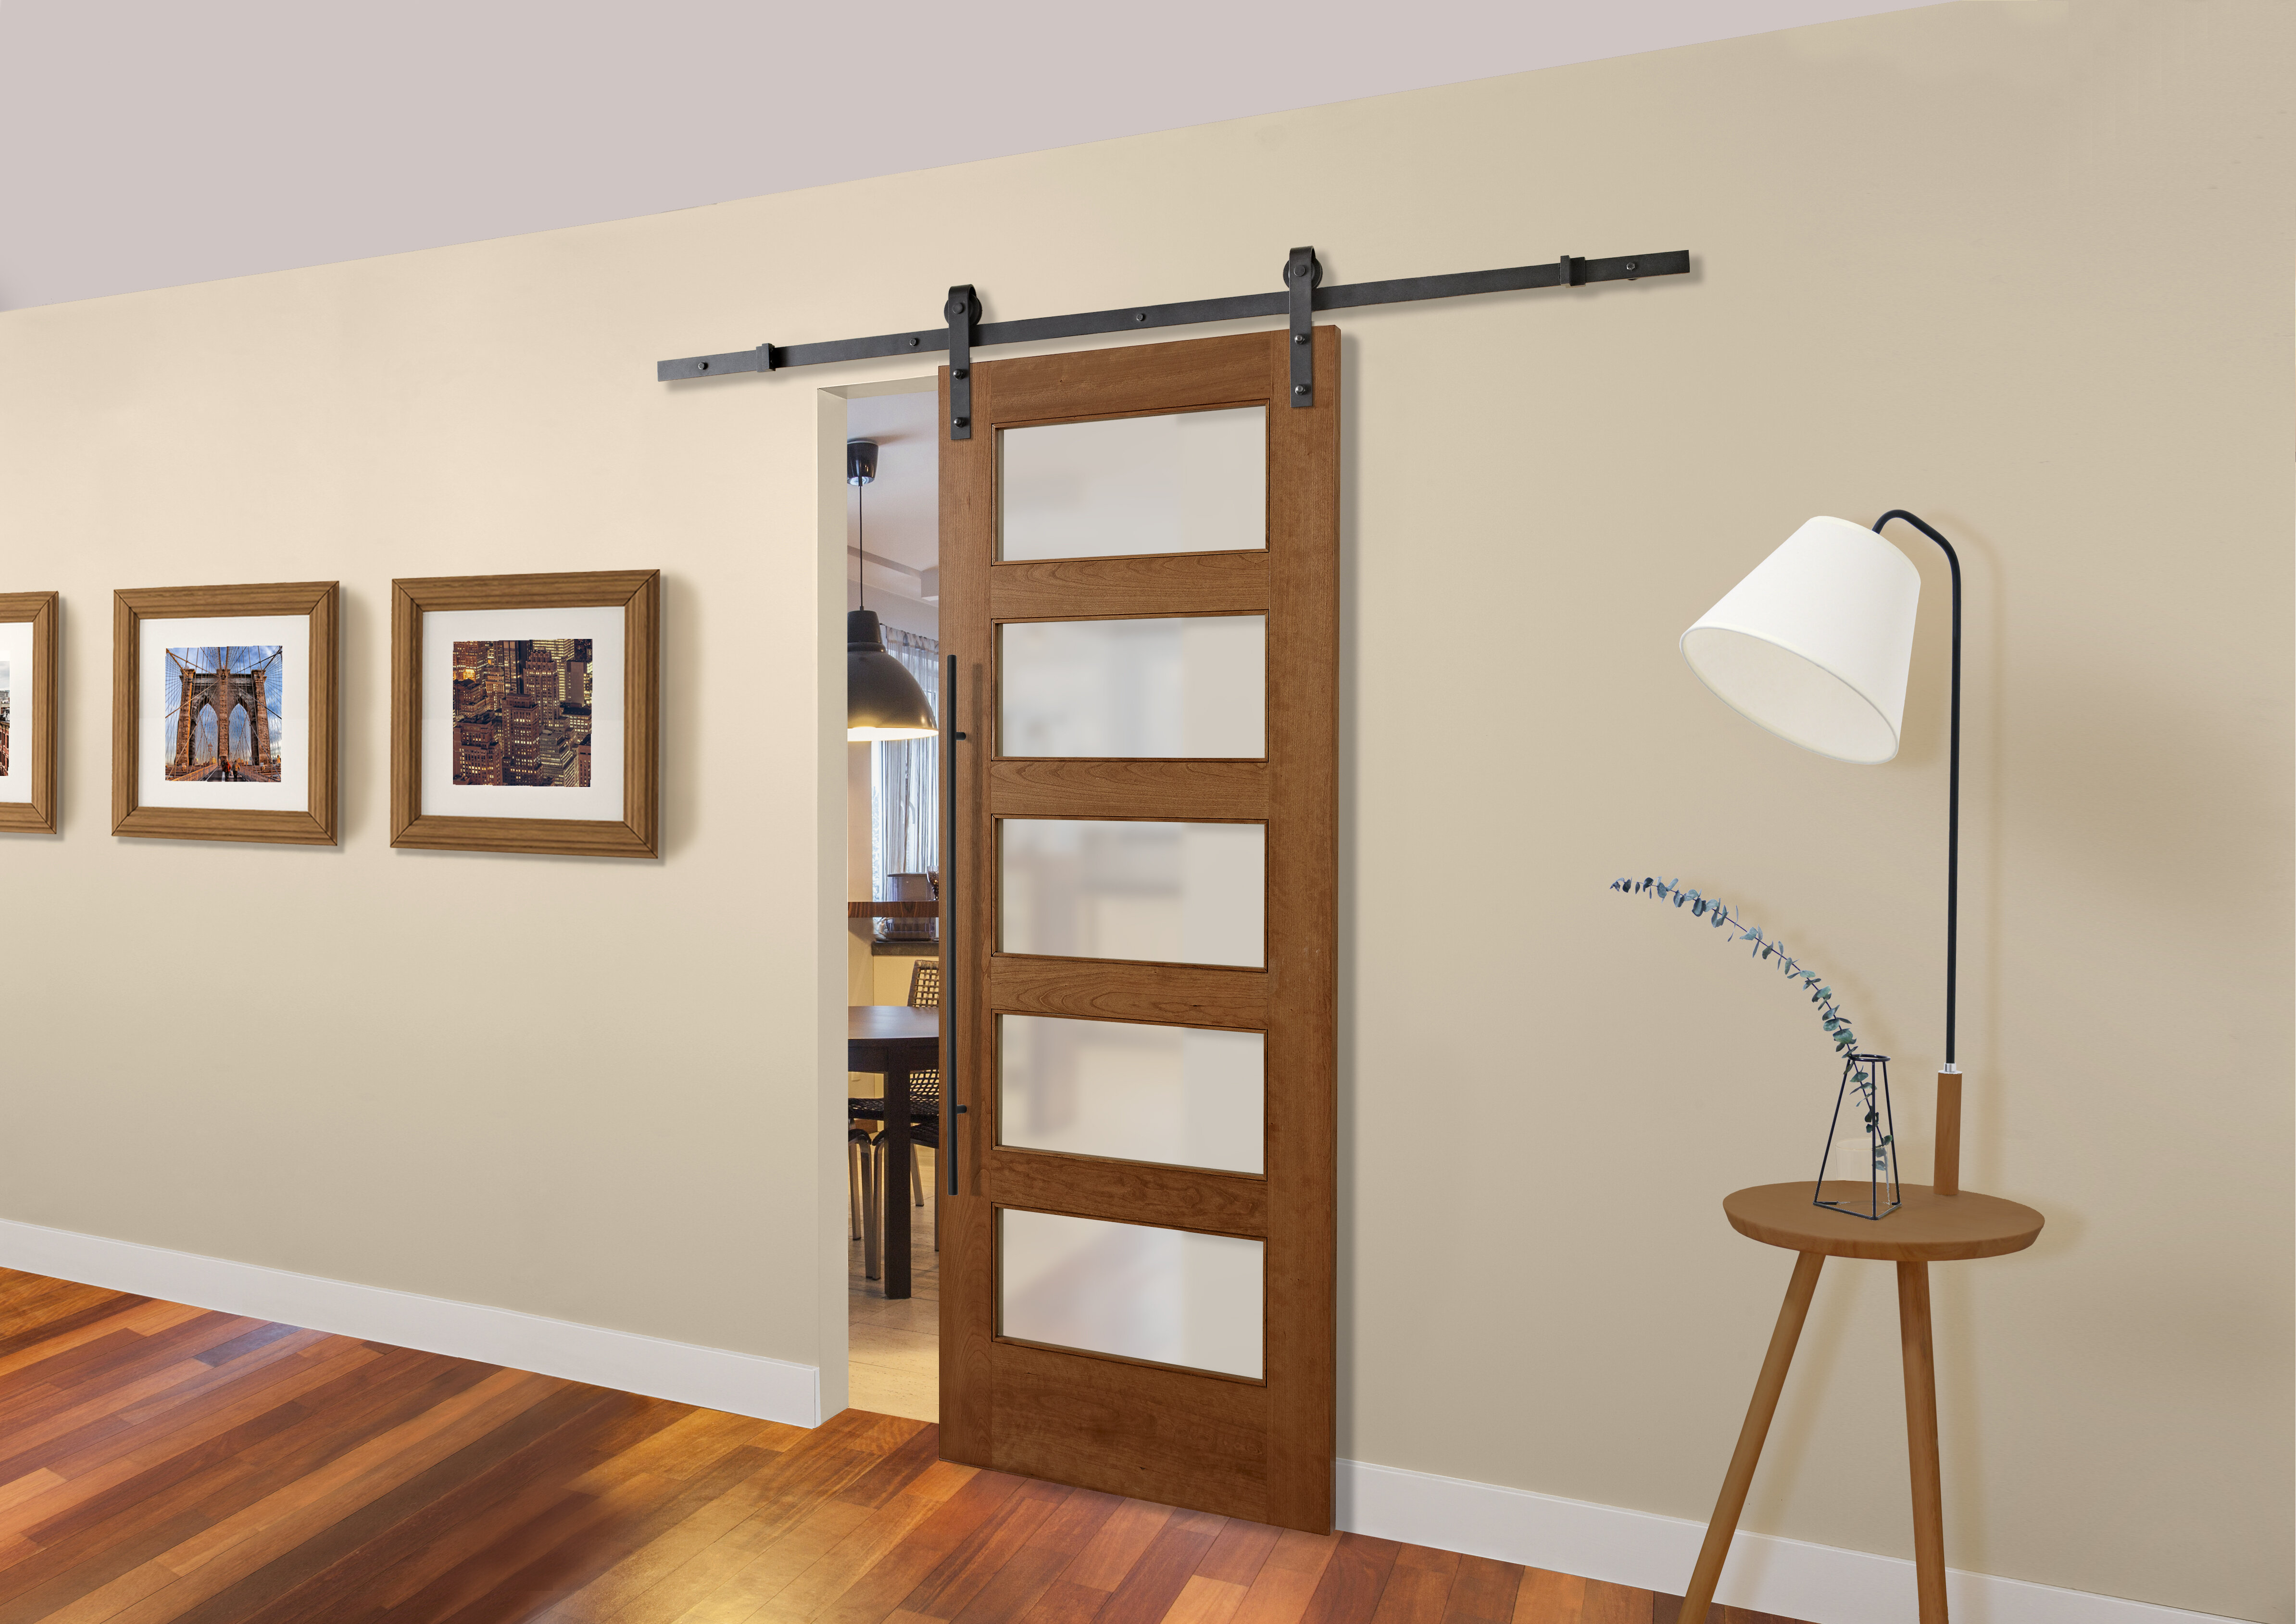 Colonial Elegance Glass Wood Unfinished Barn Door Without Installation Hardware Kit Reviews Wayfair